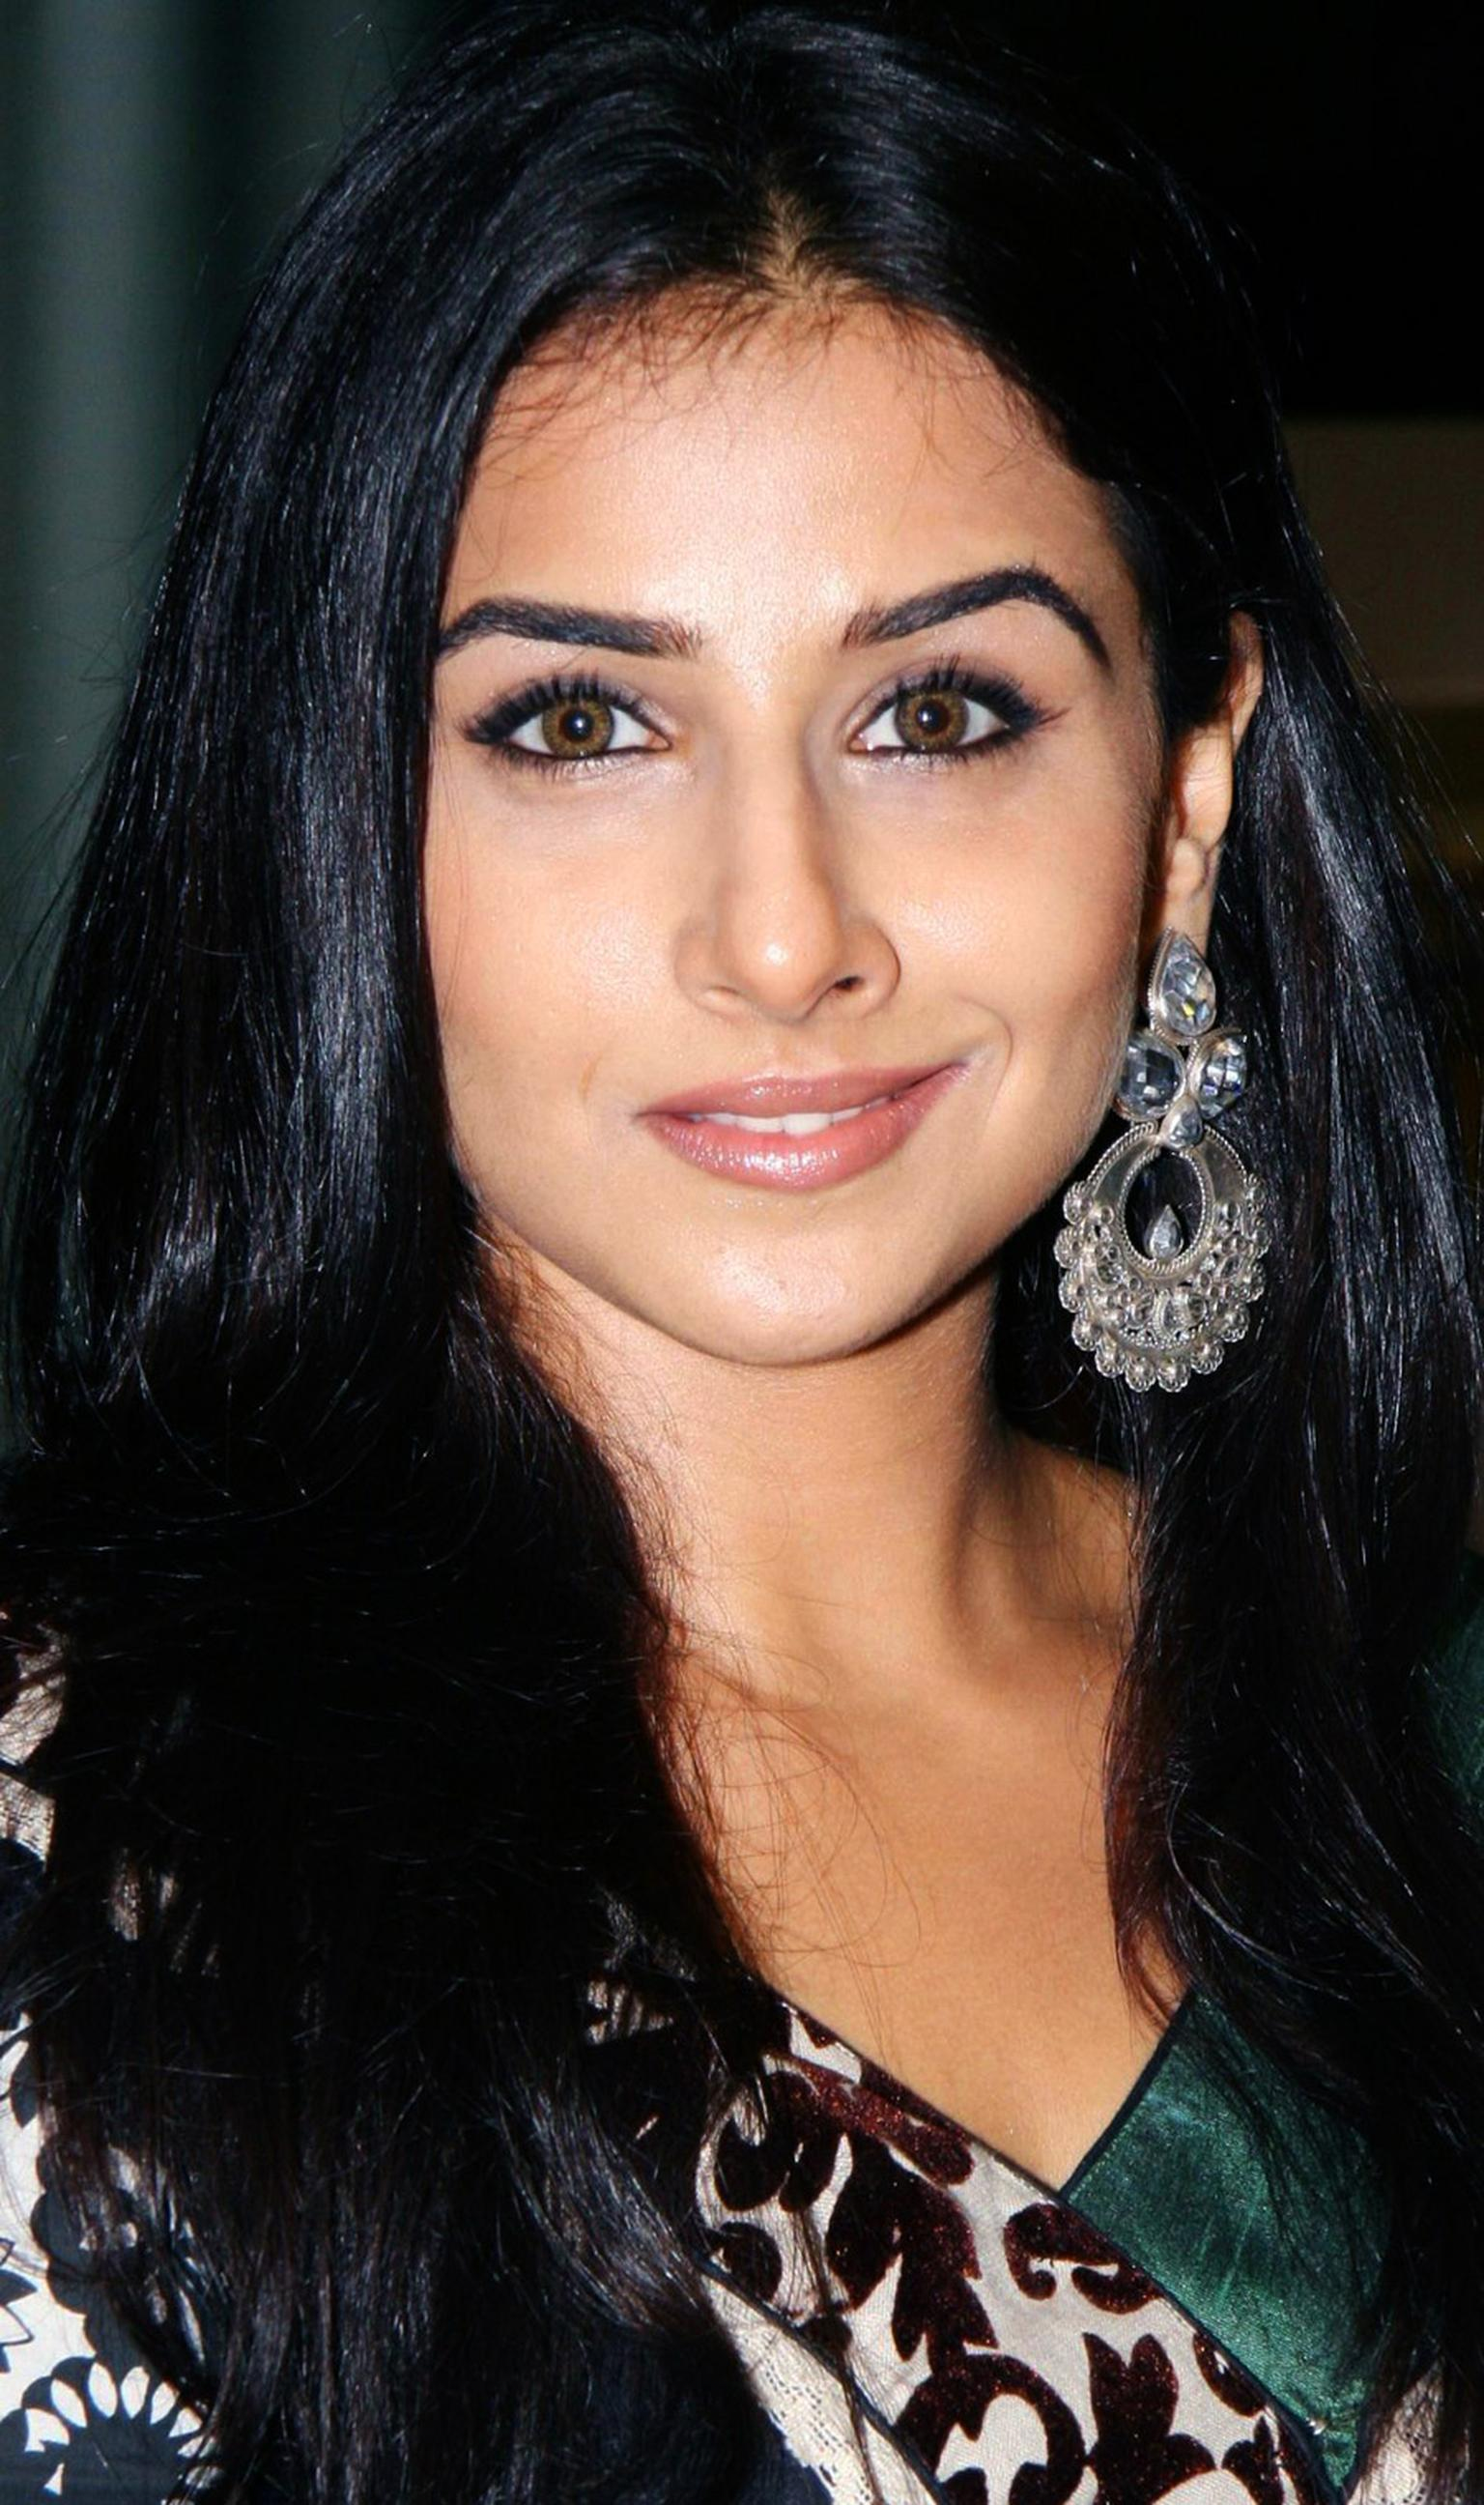 Amrapali-Vidya-Balan-in-Amrapali-earrings